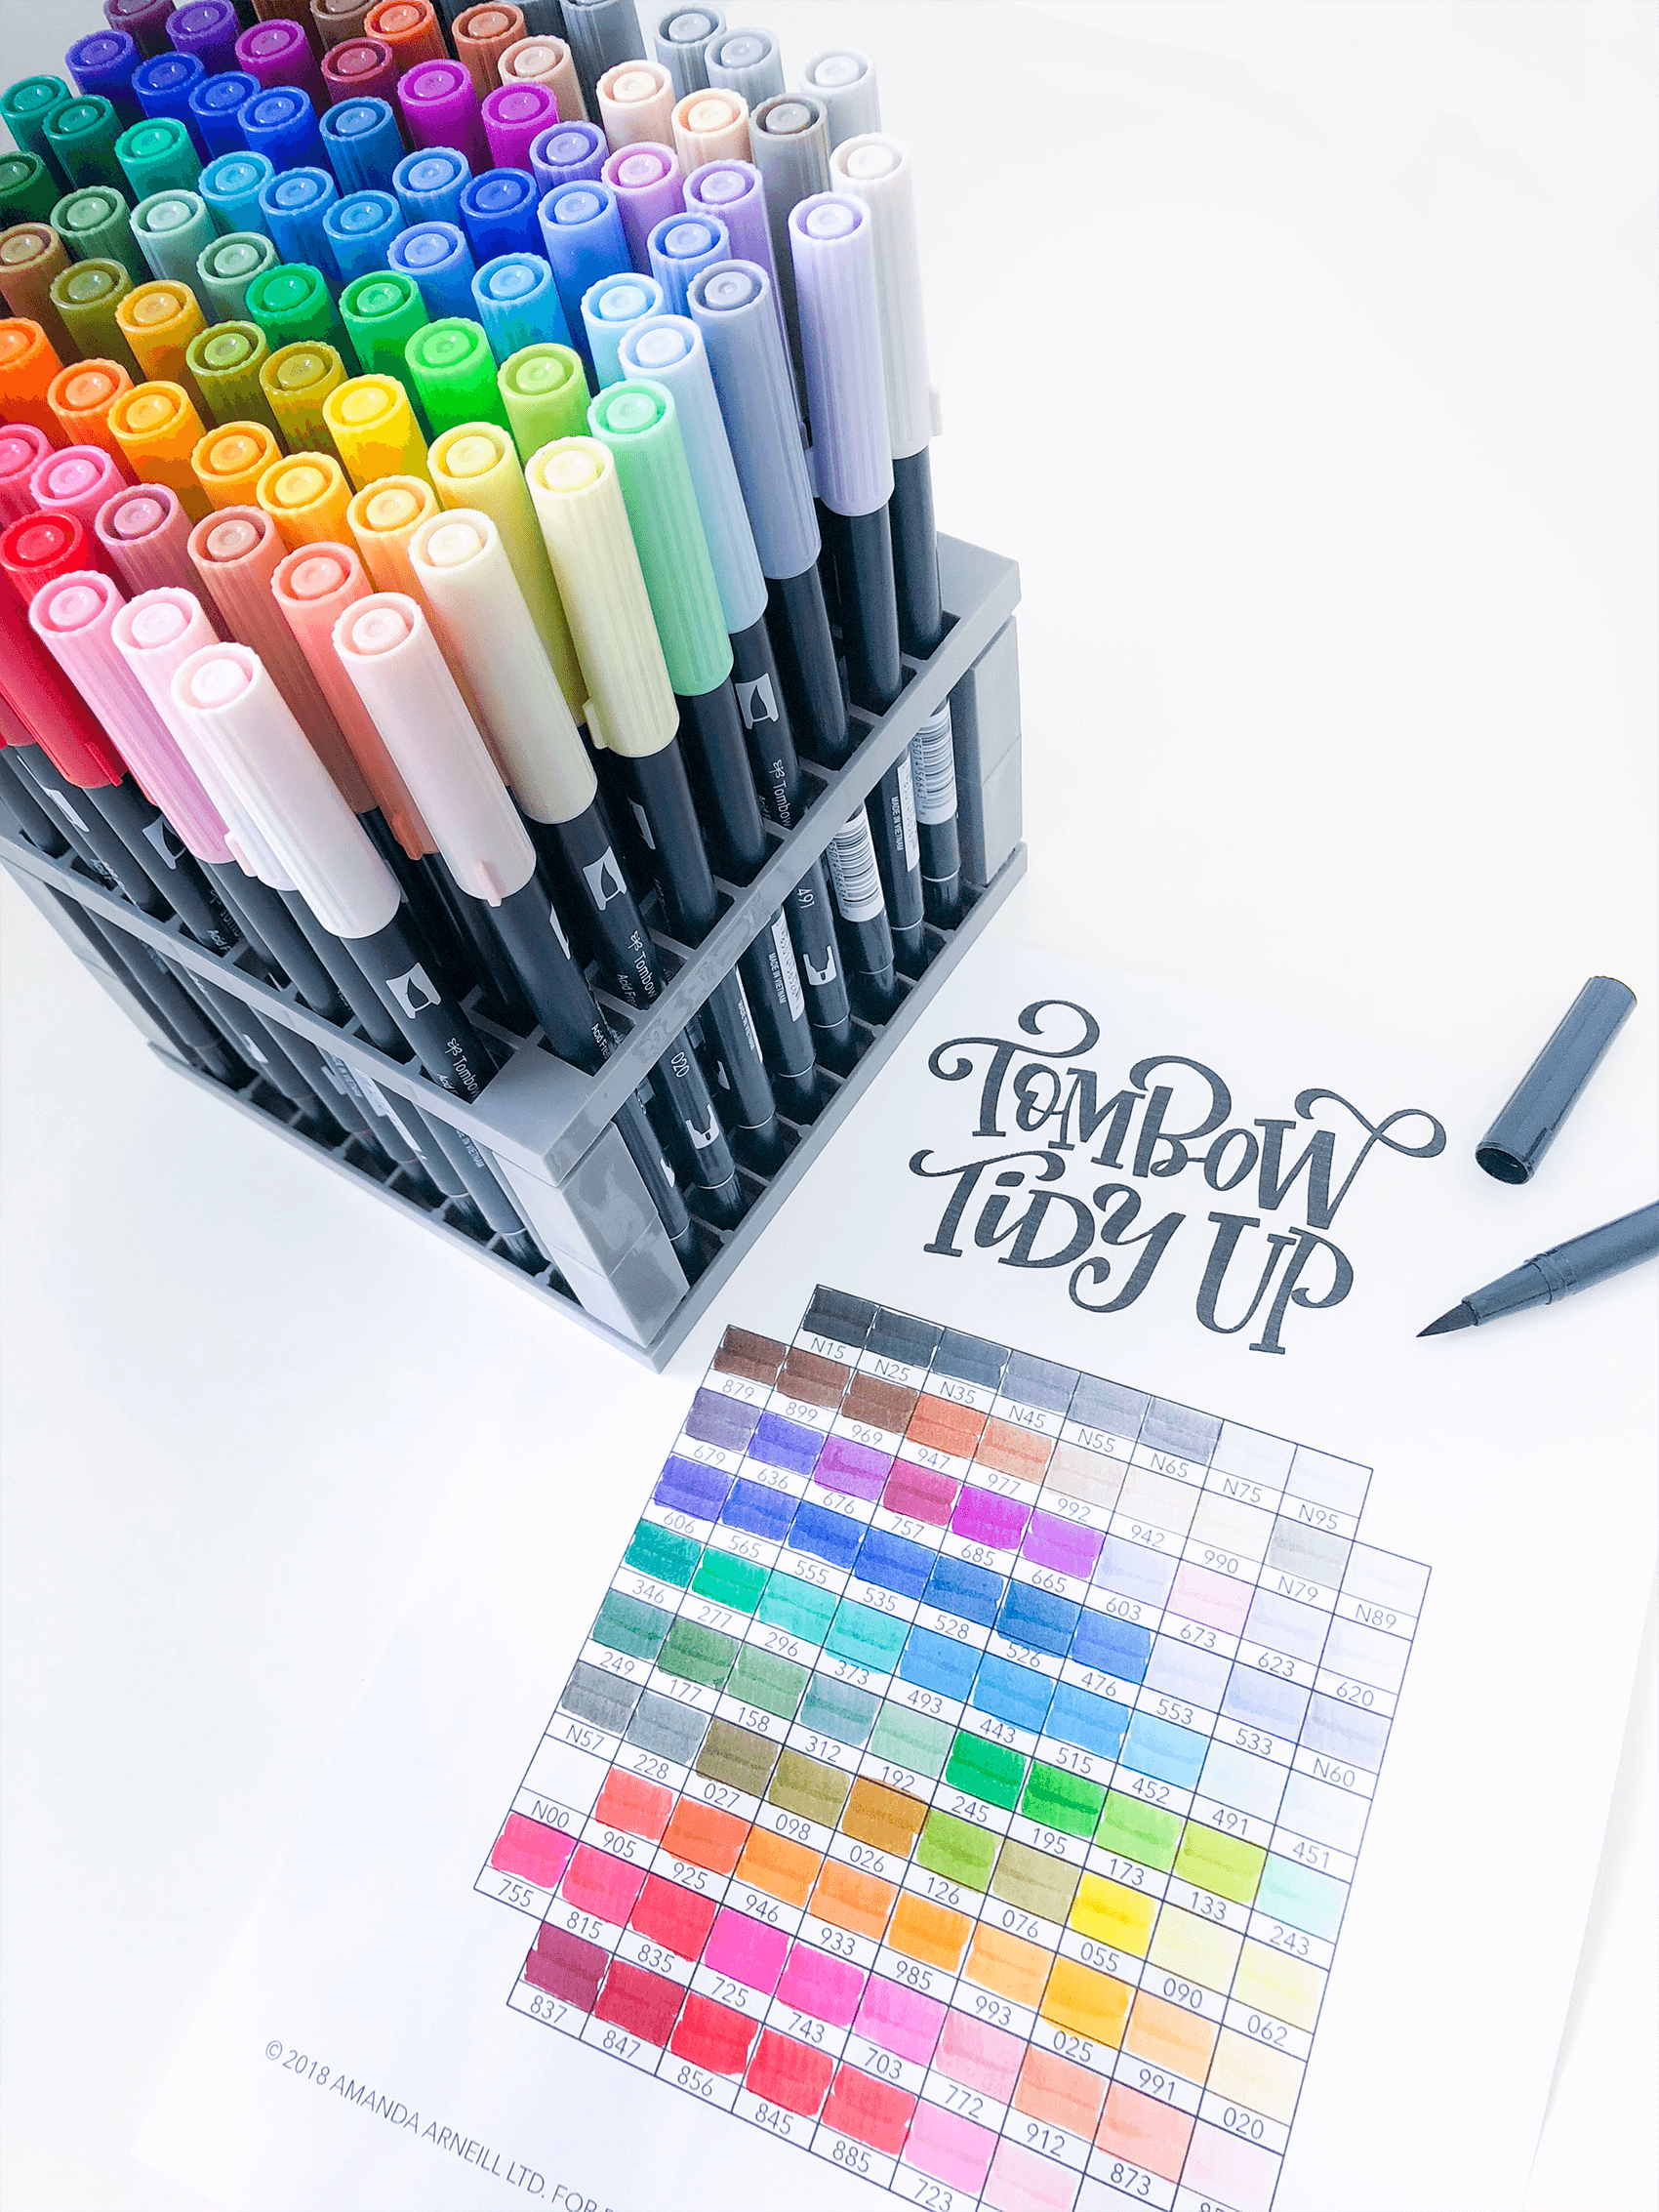 Tombow Tidy Up Layout 1 1 Amanda Arneill Hand Lettering